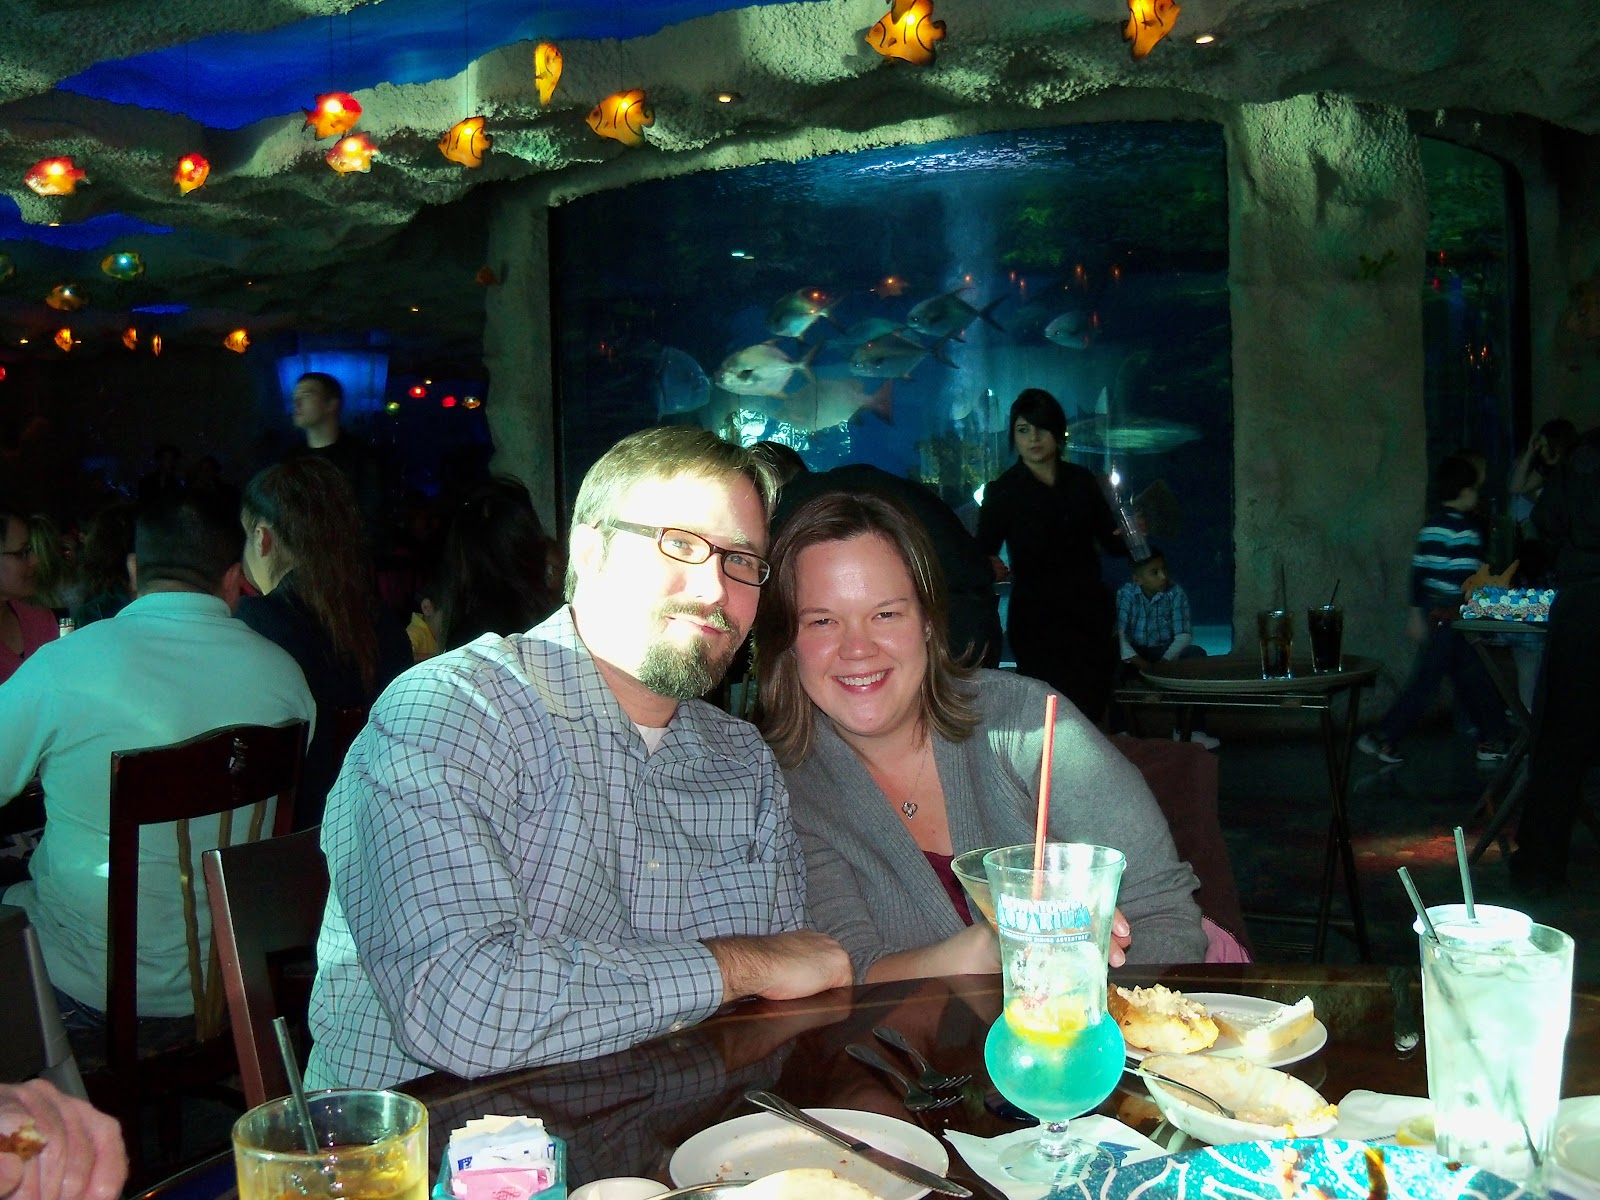 Birthday at Downtown Aquarium - 100_6128.JPG